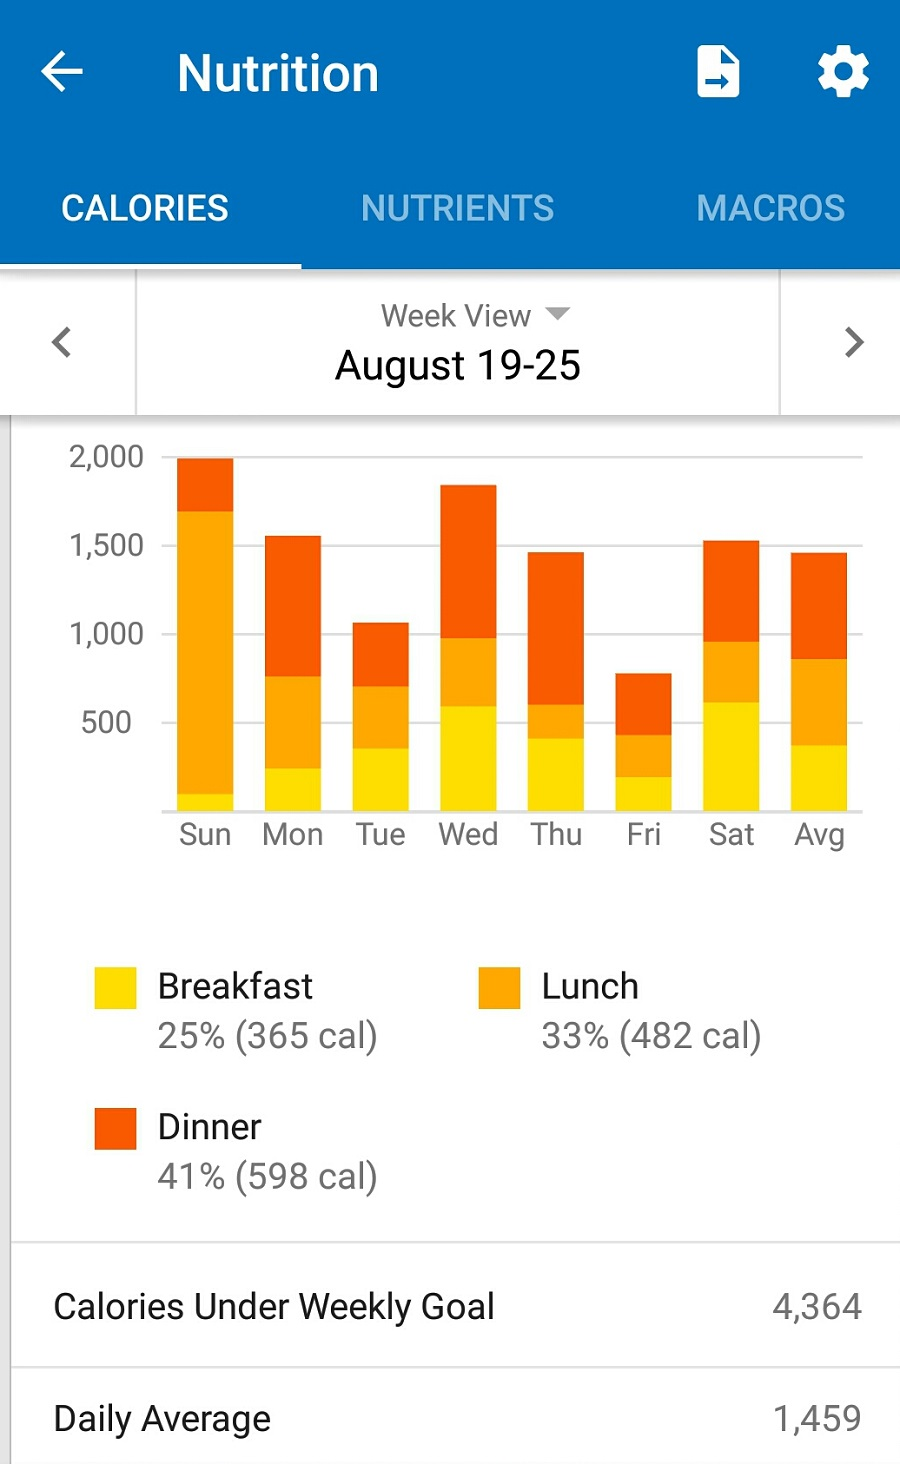 Calories Week TWO August 19 to August 25